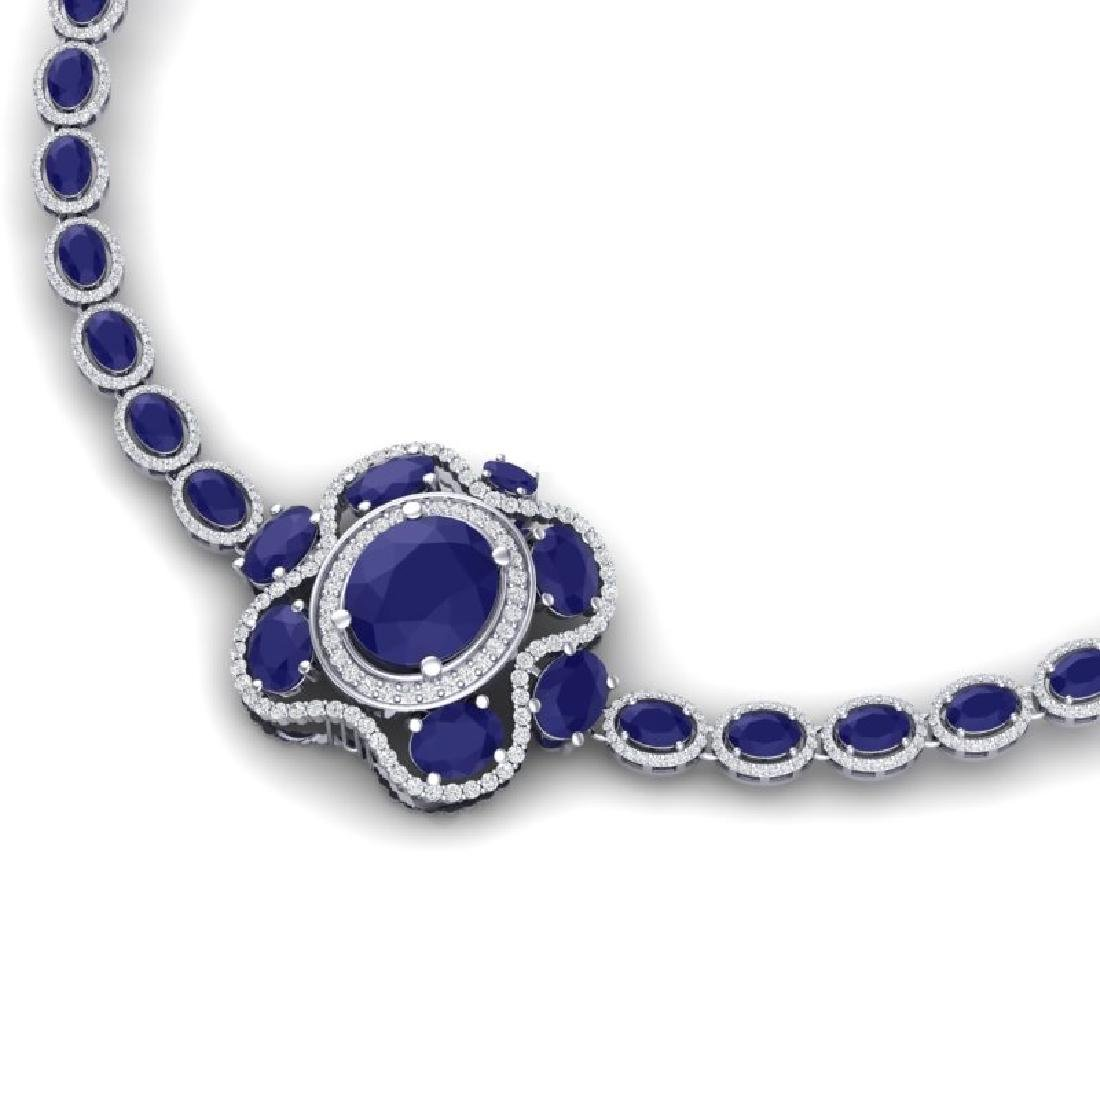 47.43 CTW Royalty Sapphire & VS Diamond Necklace 18K